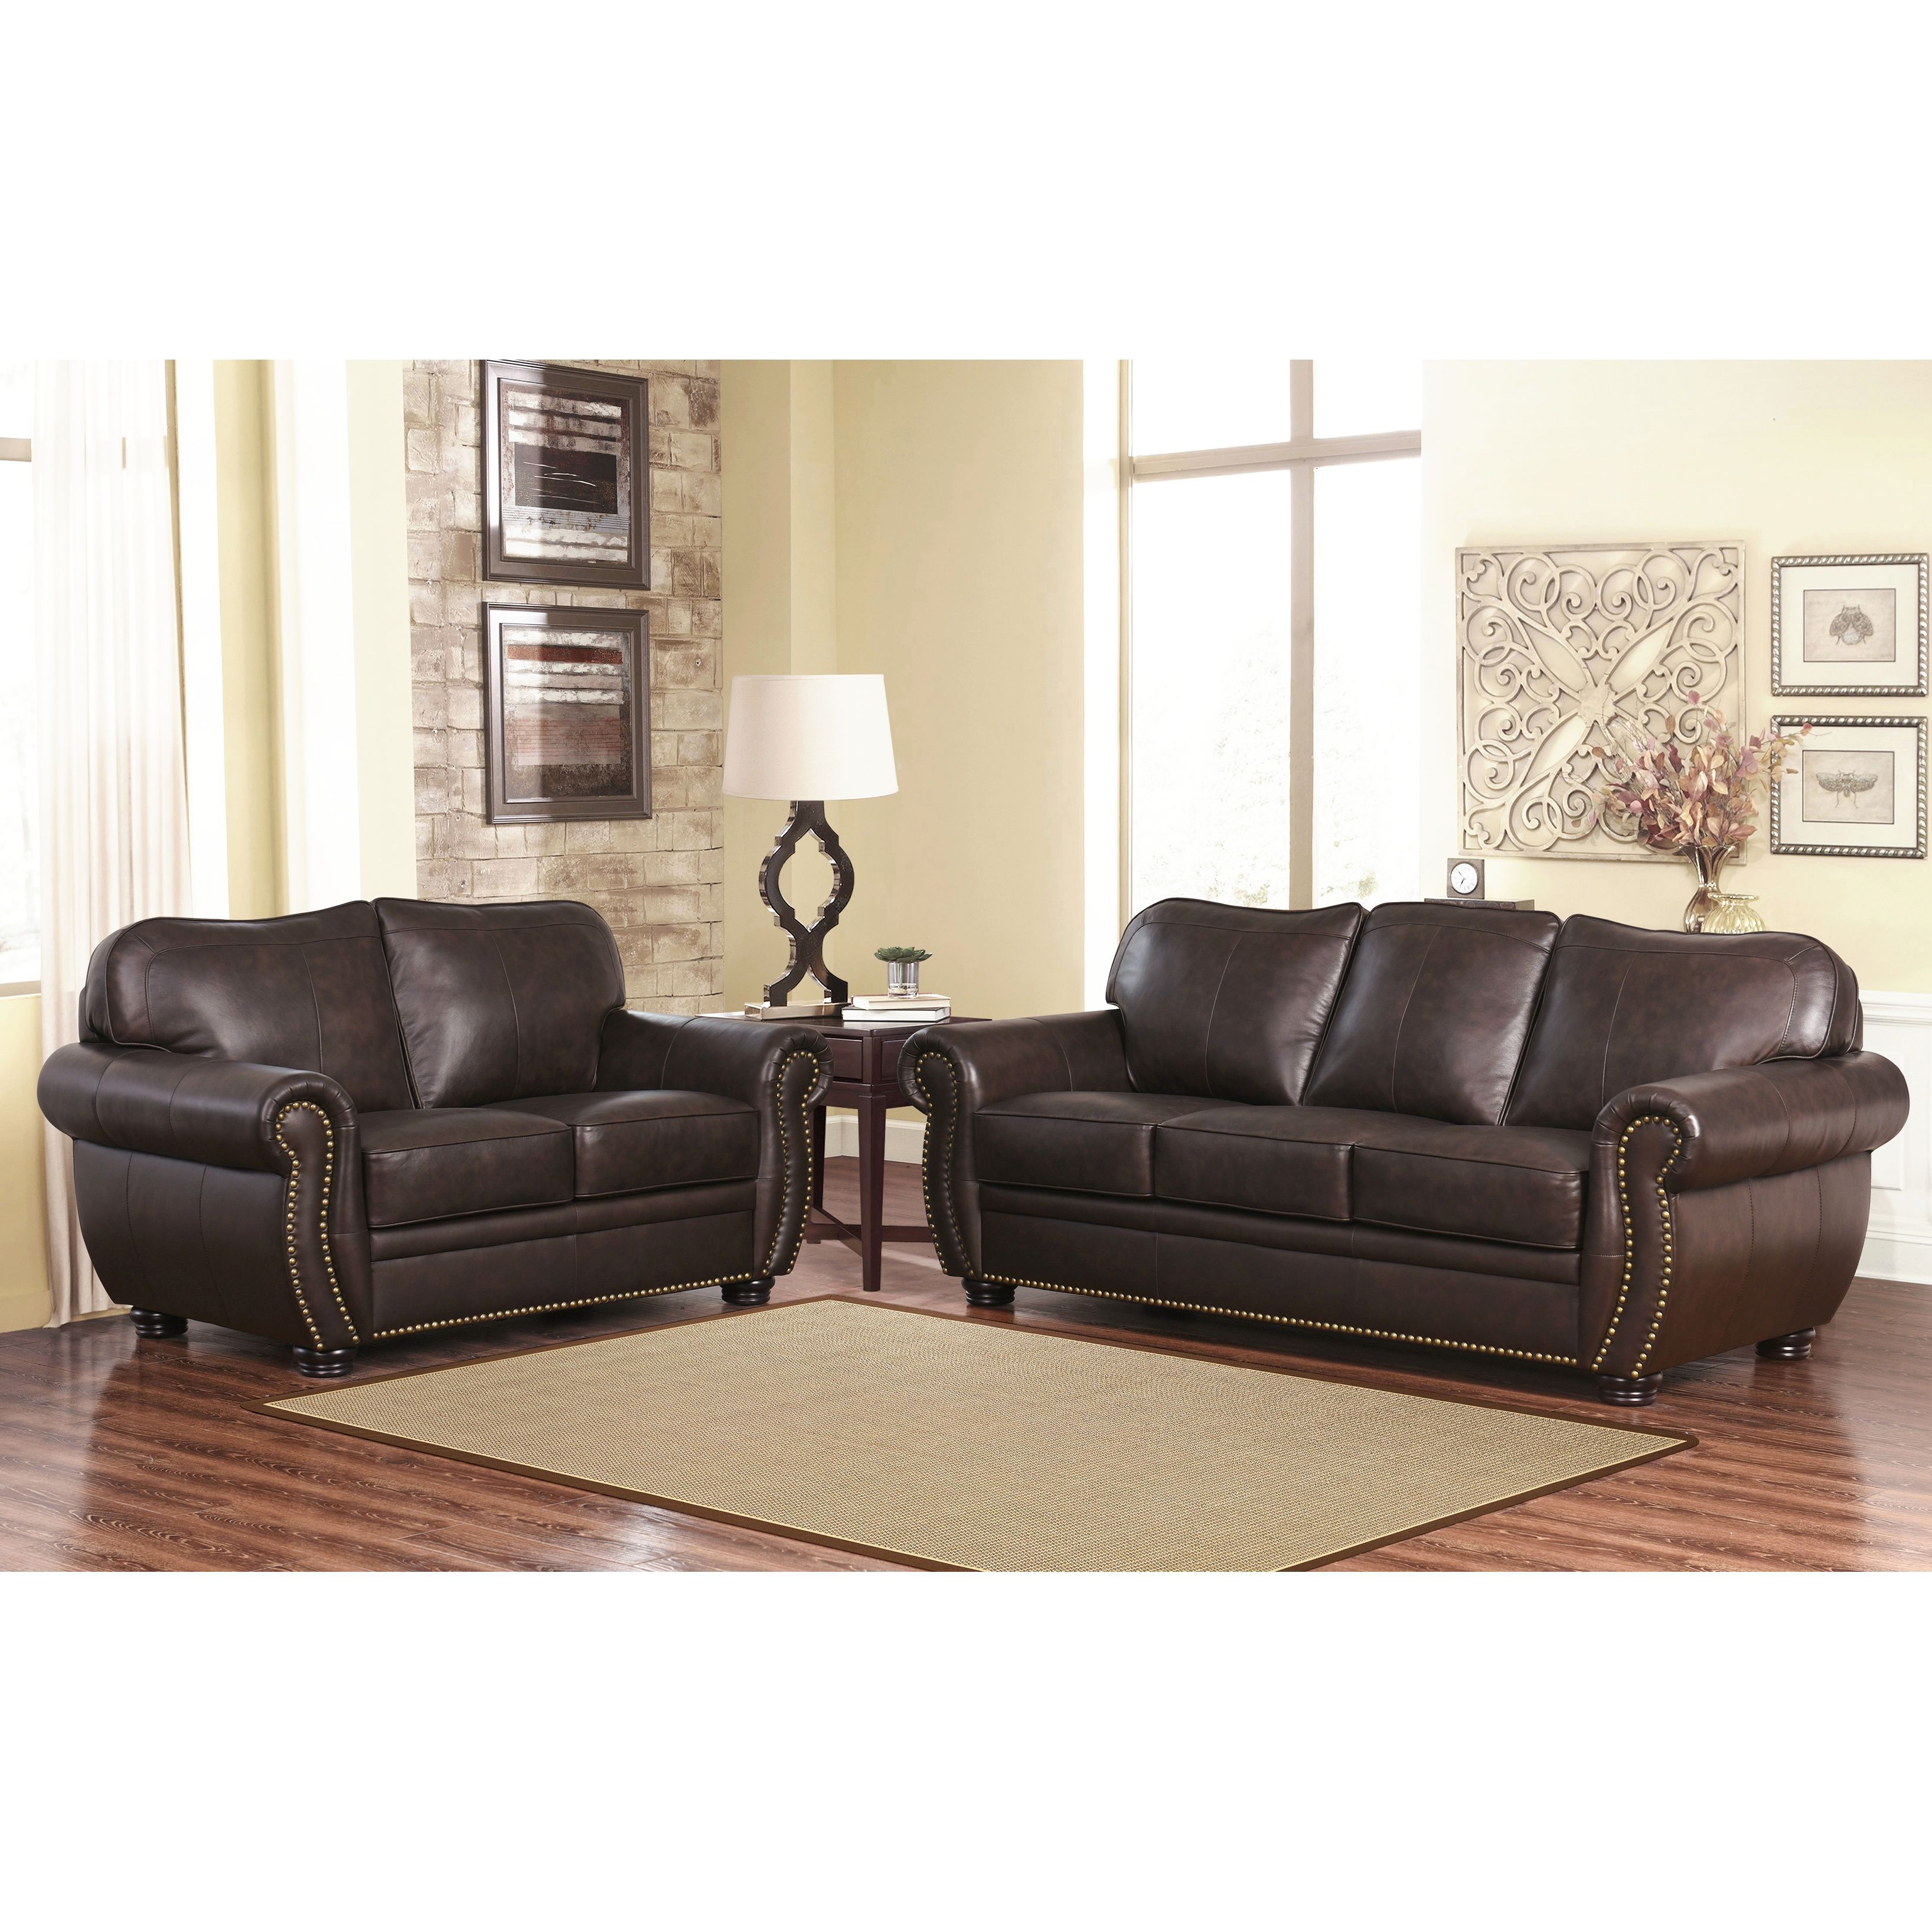 Overstock Com Online Shopping Bedding Furniture Electronics Jewelry Clothing More Living Room Sets Sofa And Loveseat Set Living Room Sofa Set